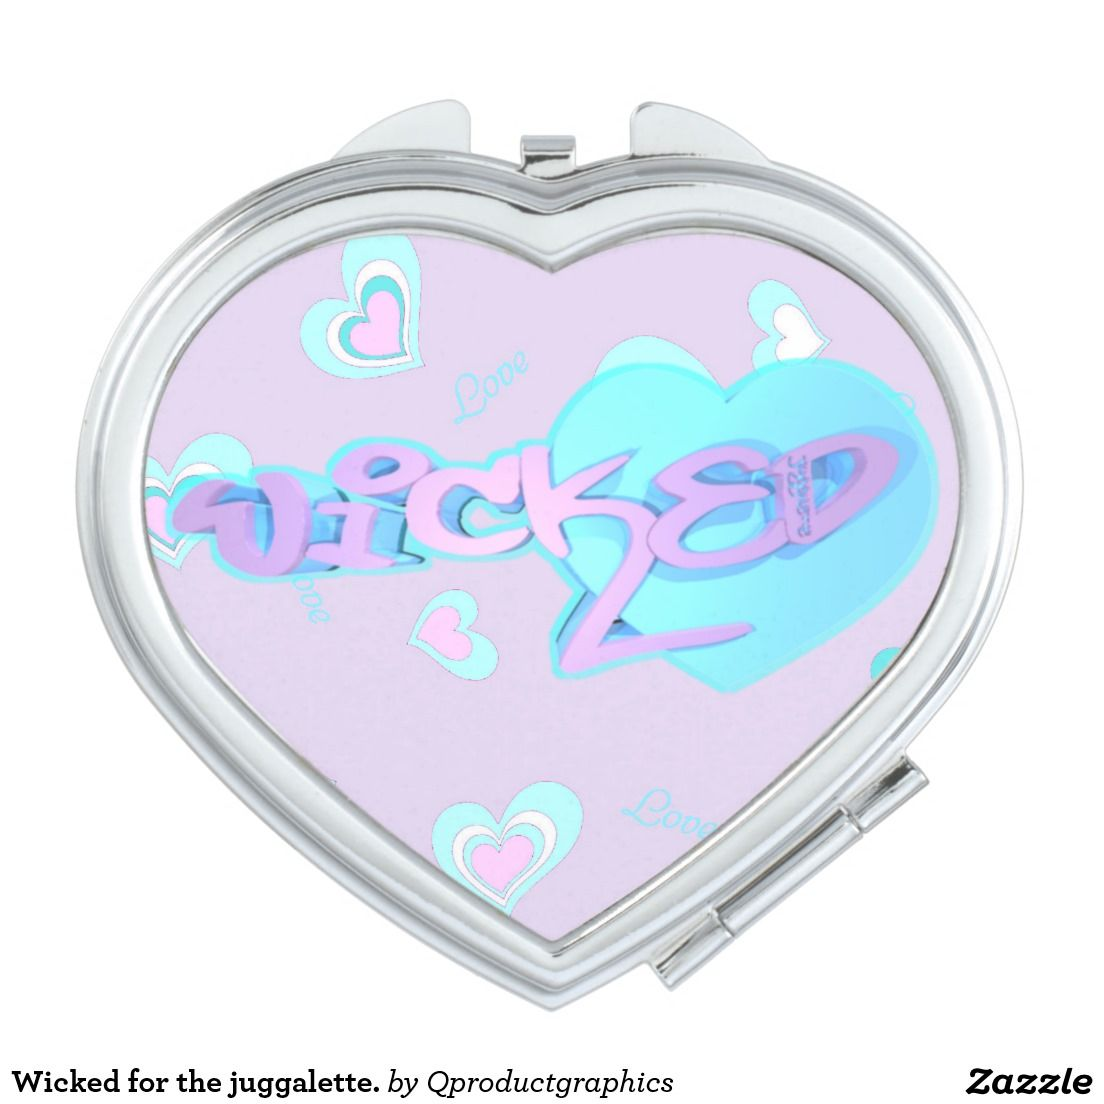 Wicked for the juggalette. mirror for makeup. #wicked #juggalo #juggalette #family